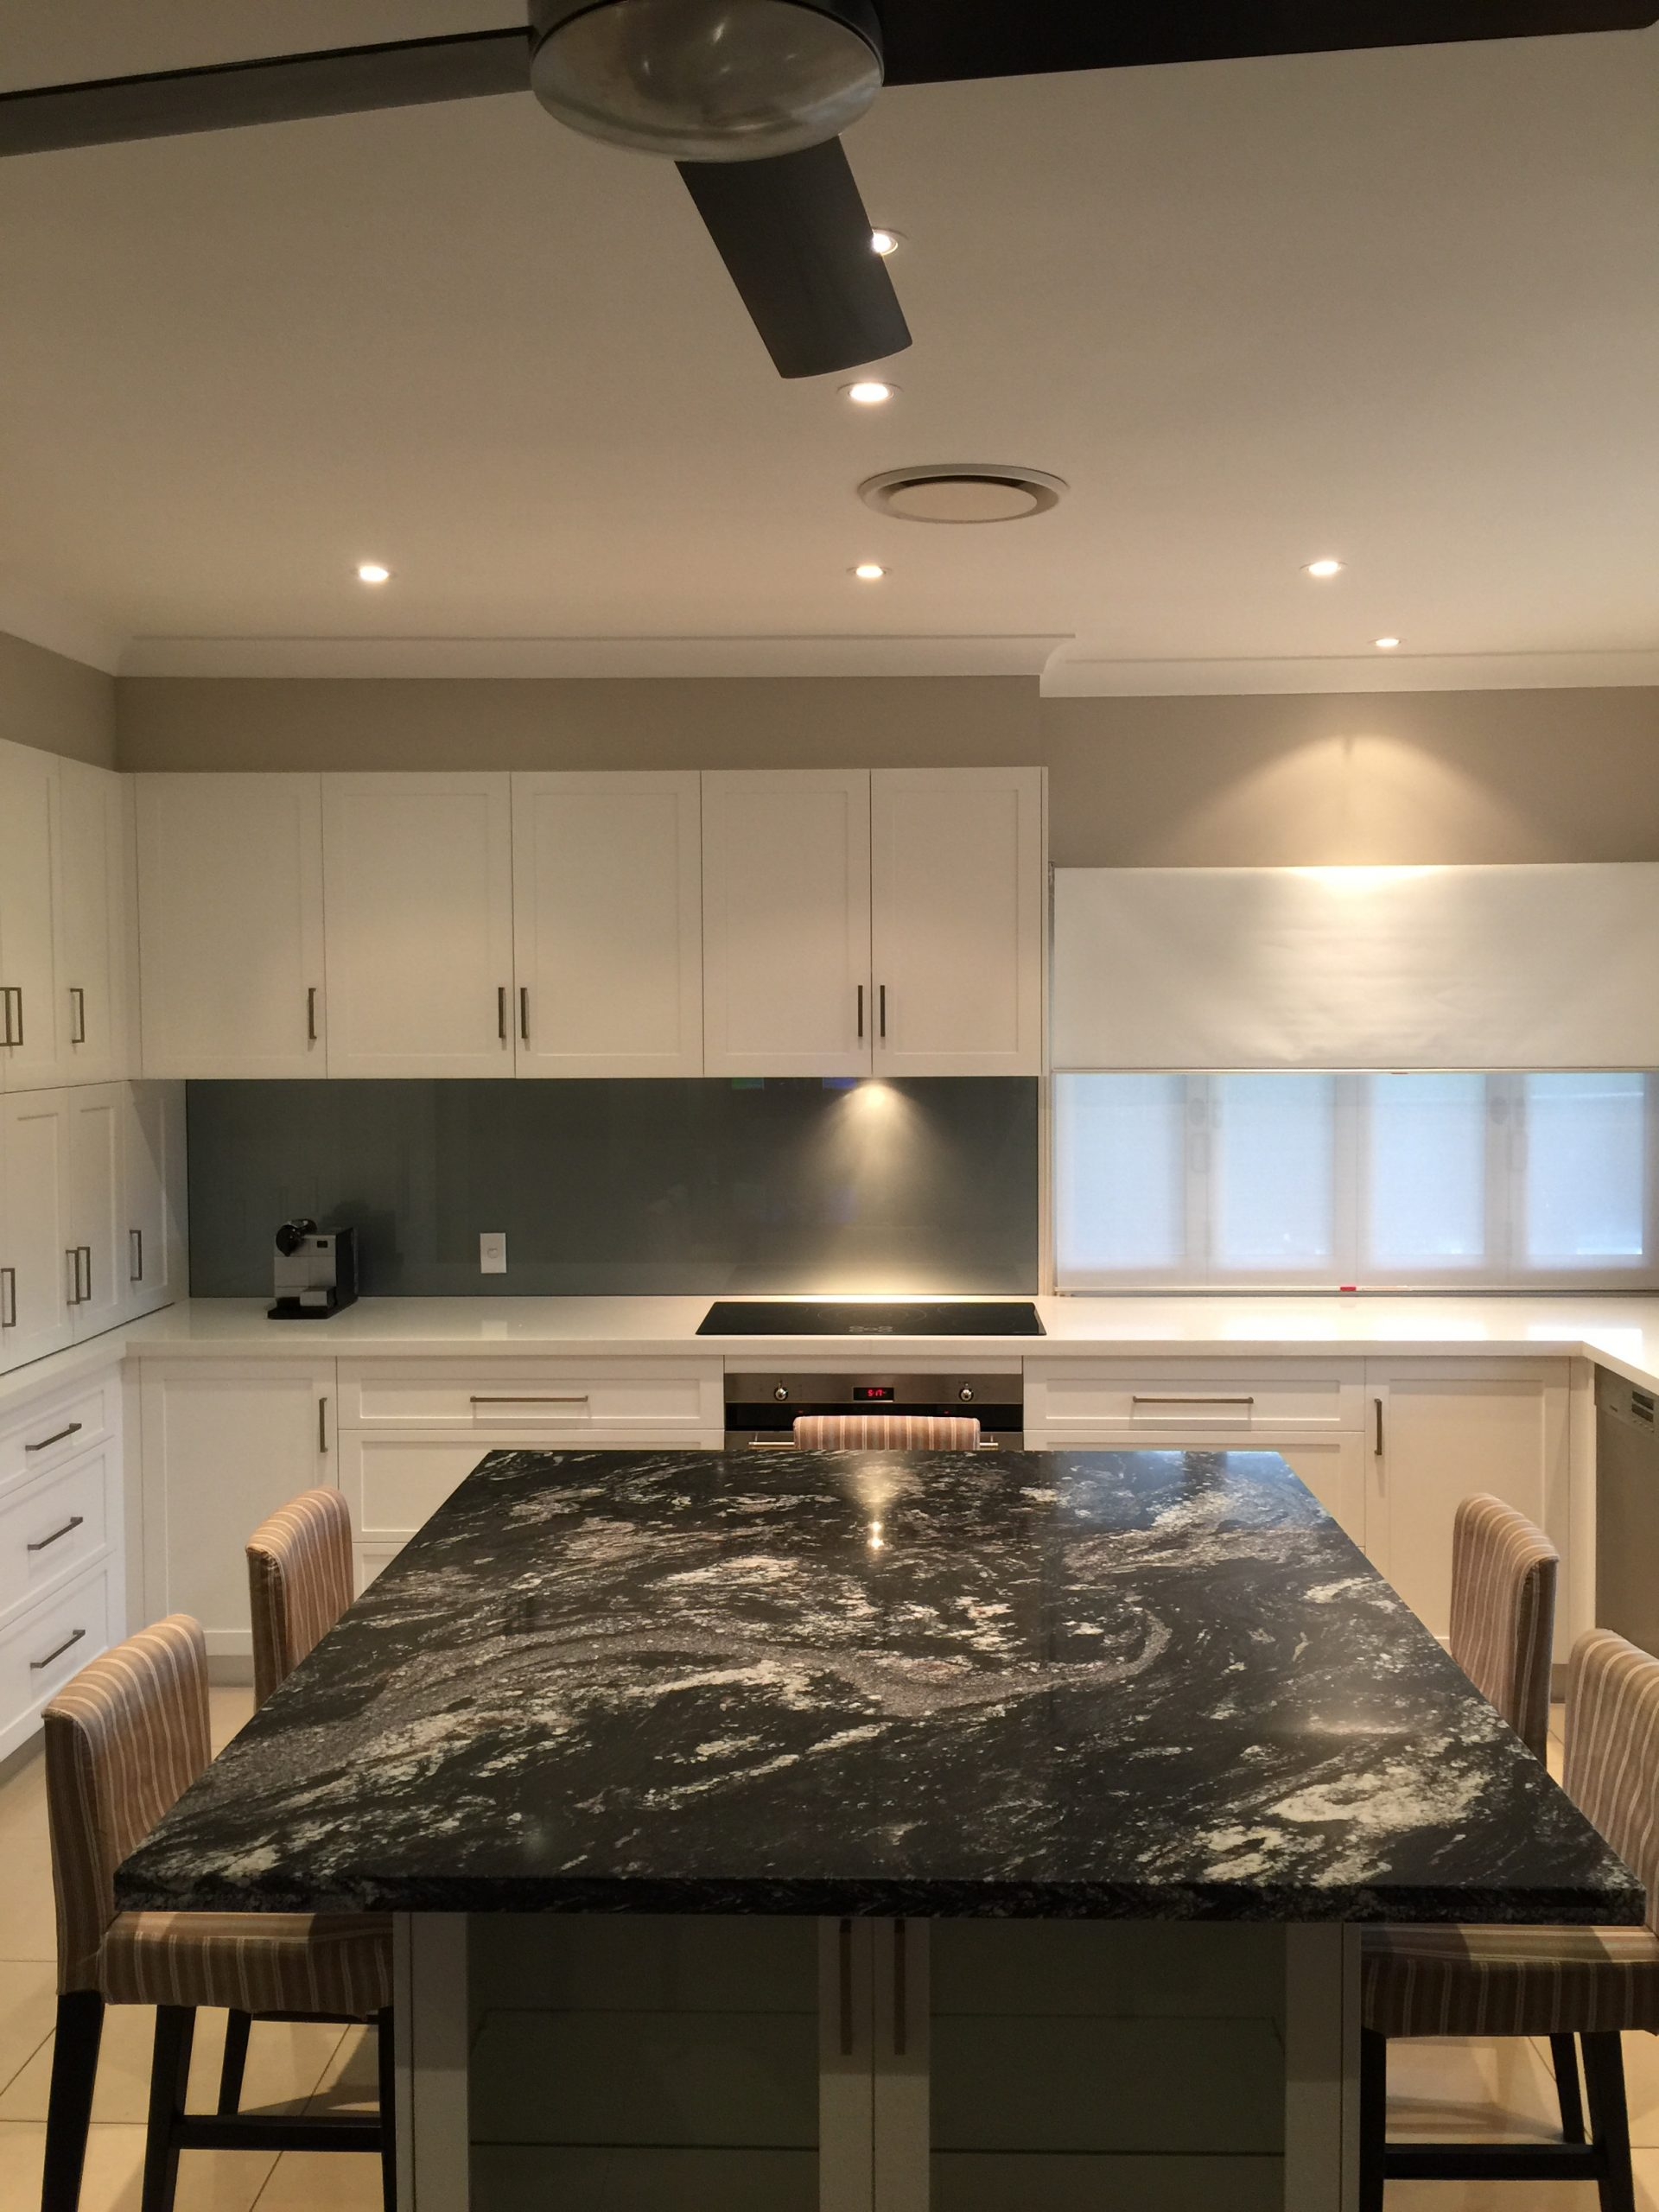 Troy Roberts - PRODUCTS FULL HOUSE FIT OUTS WE AIM TO MEET YOUR EXPECTATIONS